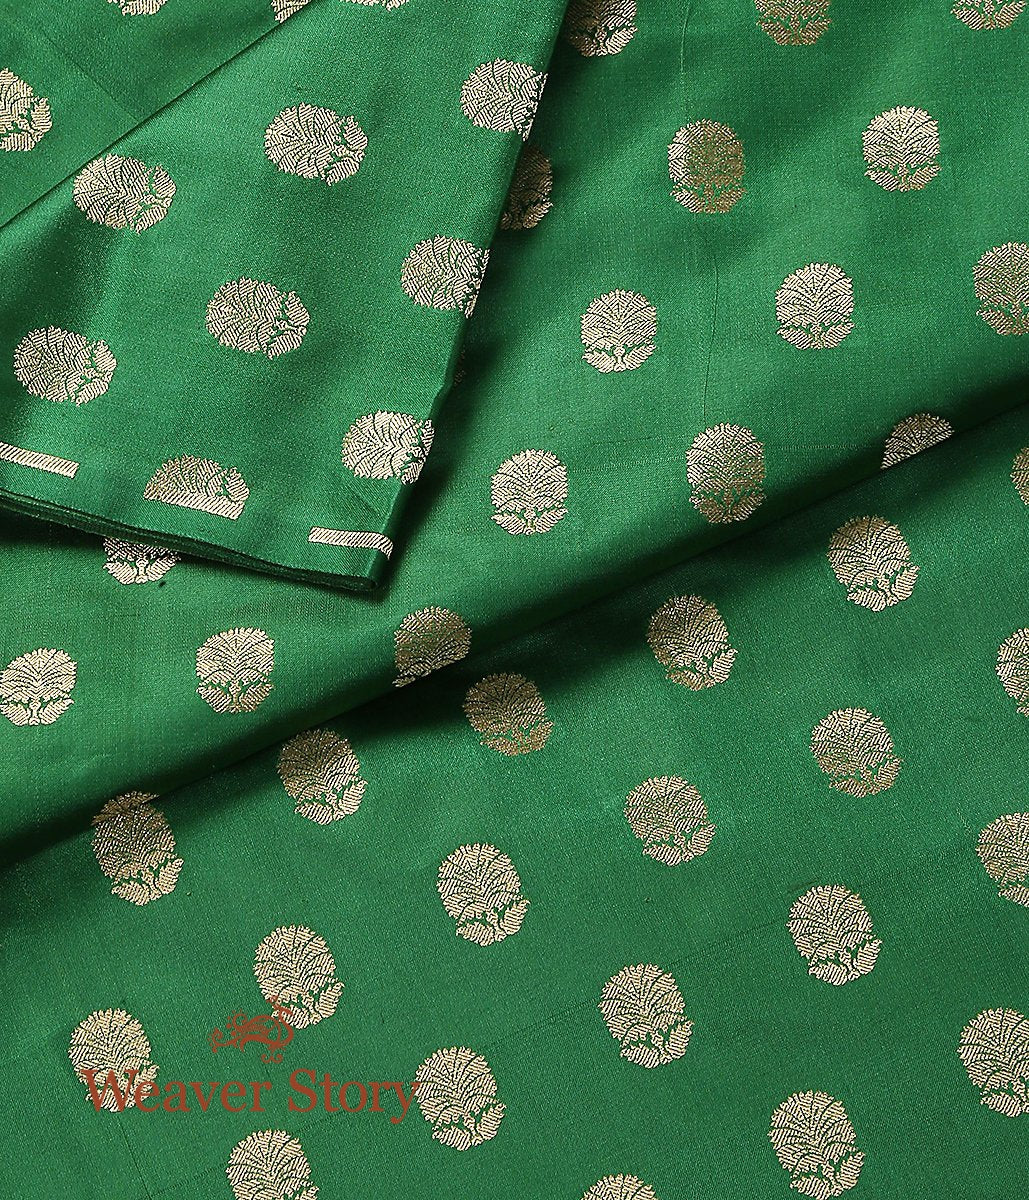 Handwoven Green Gold Zari Satin Booti Fabric